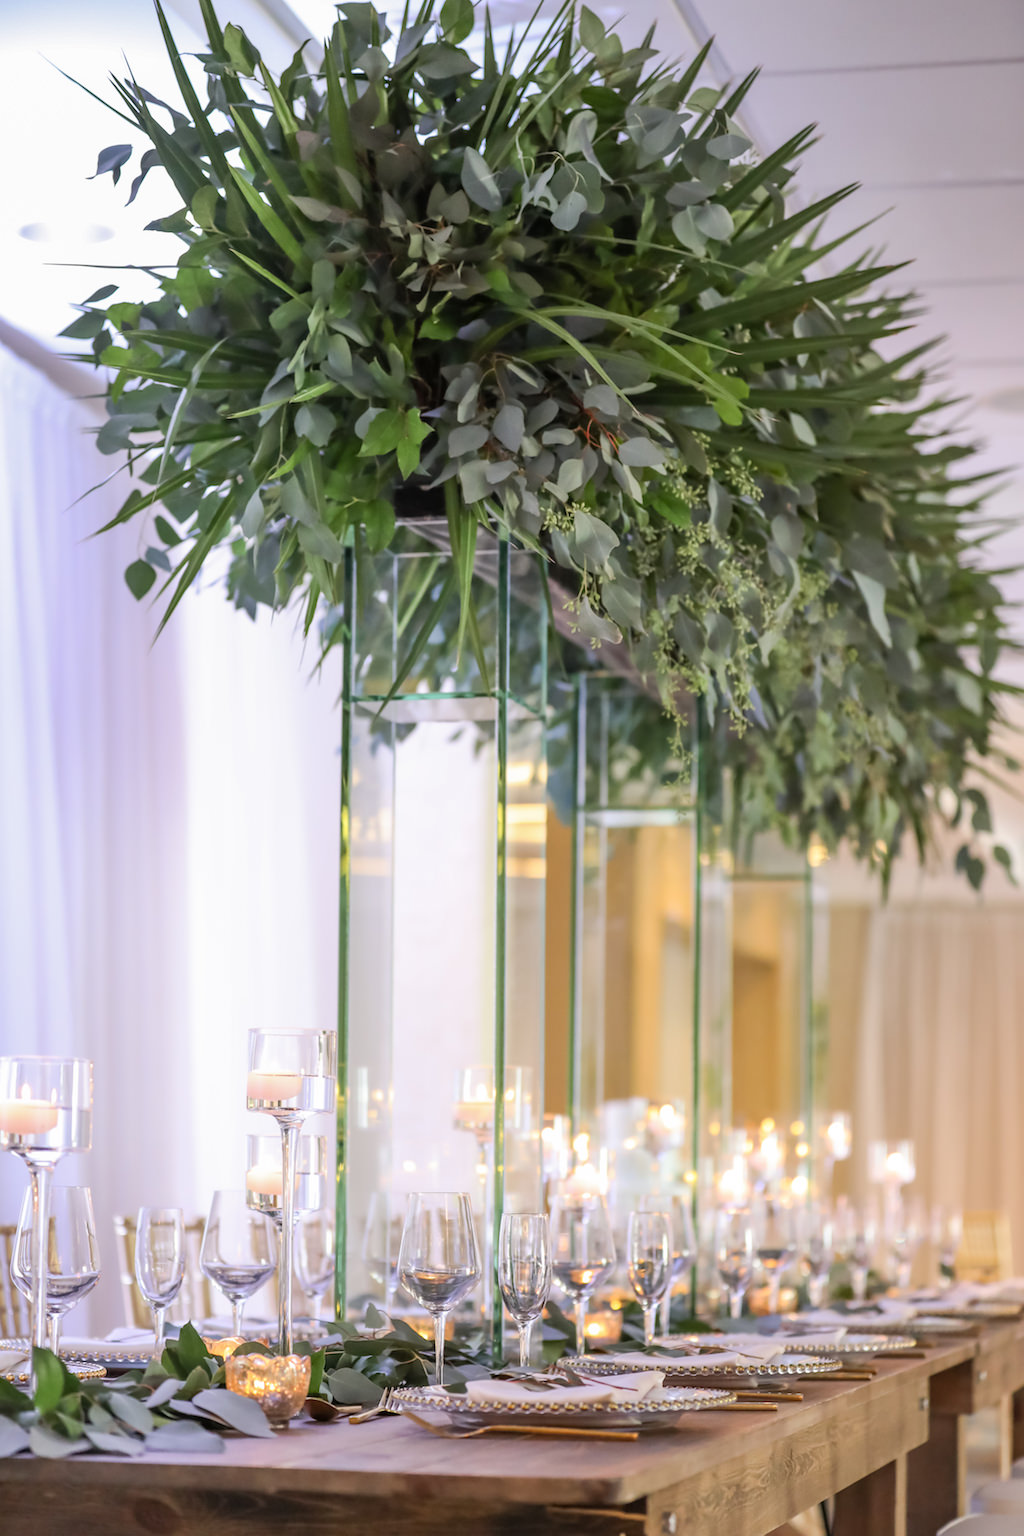 Hotel Ballroom Wedding Reception With Long Wood Feasting Table, Extra Tall Greenery Centerpiece in Clear Glass Rectangular Vases, Gold Chiavari Chairs, White Draping, and Glass Candleholders at Varying Heights and Gold Beaded Glass Chargers   Beach Hotel Wedding Venue Hilton Clearwater Beach